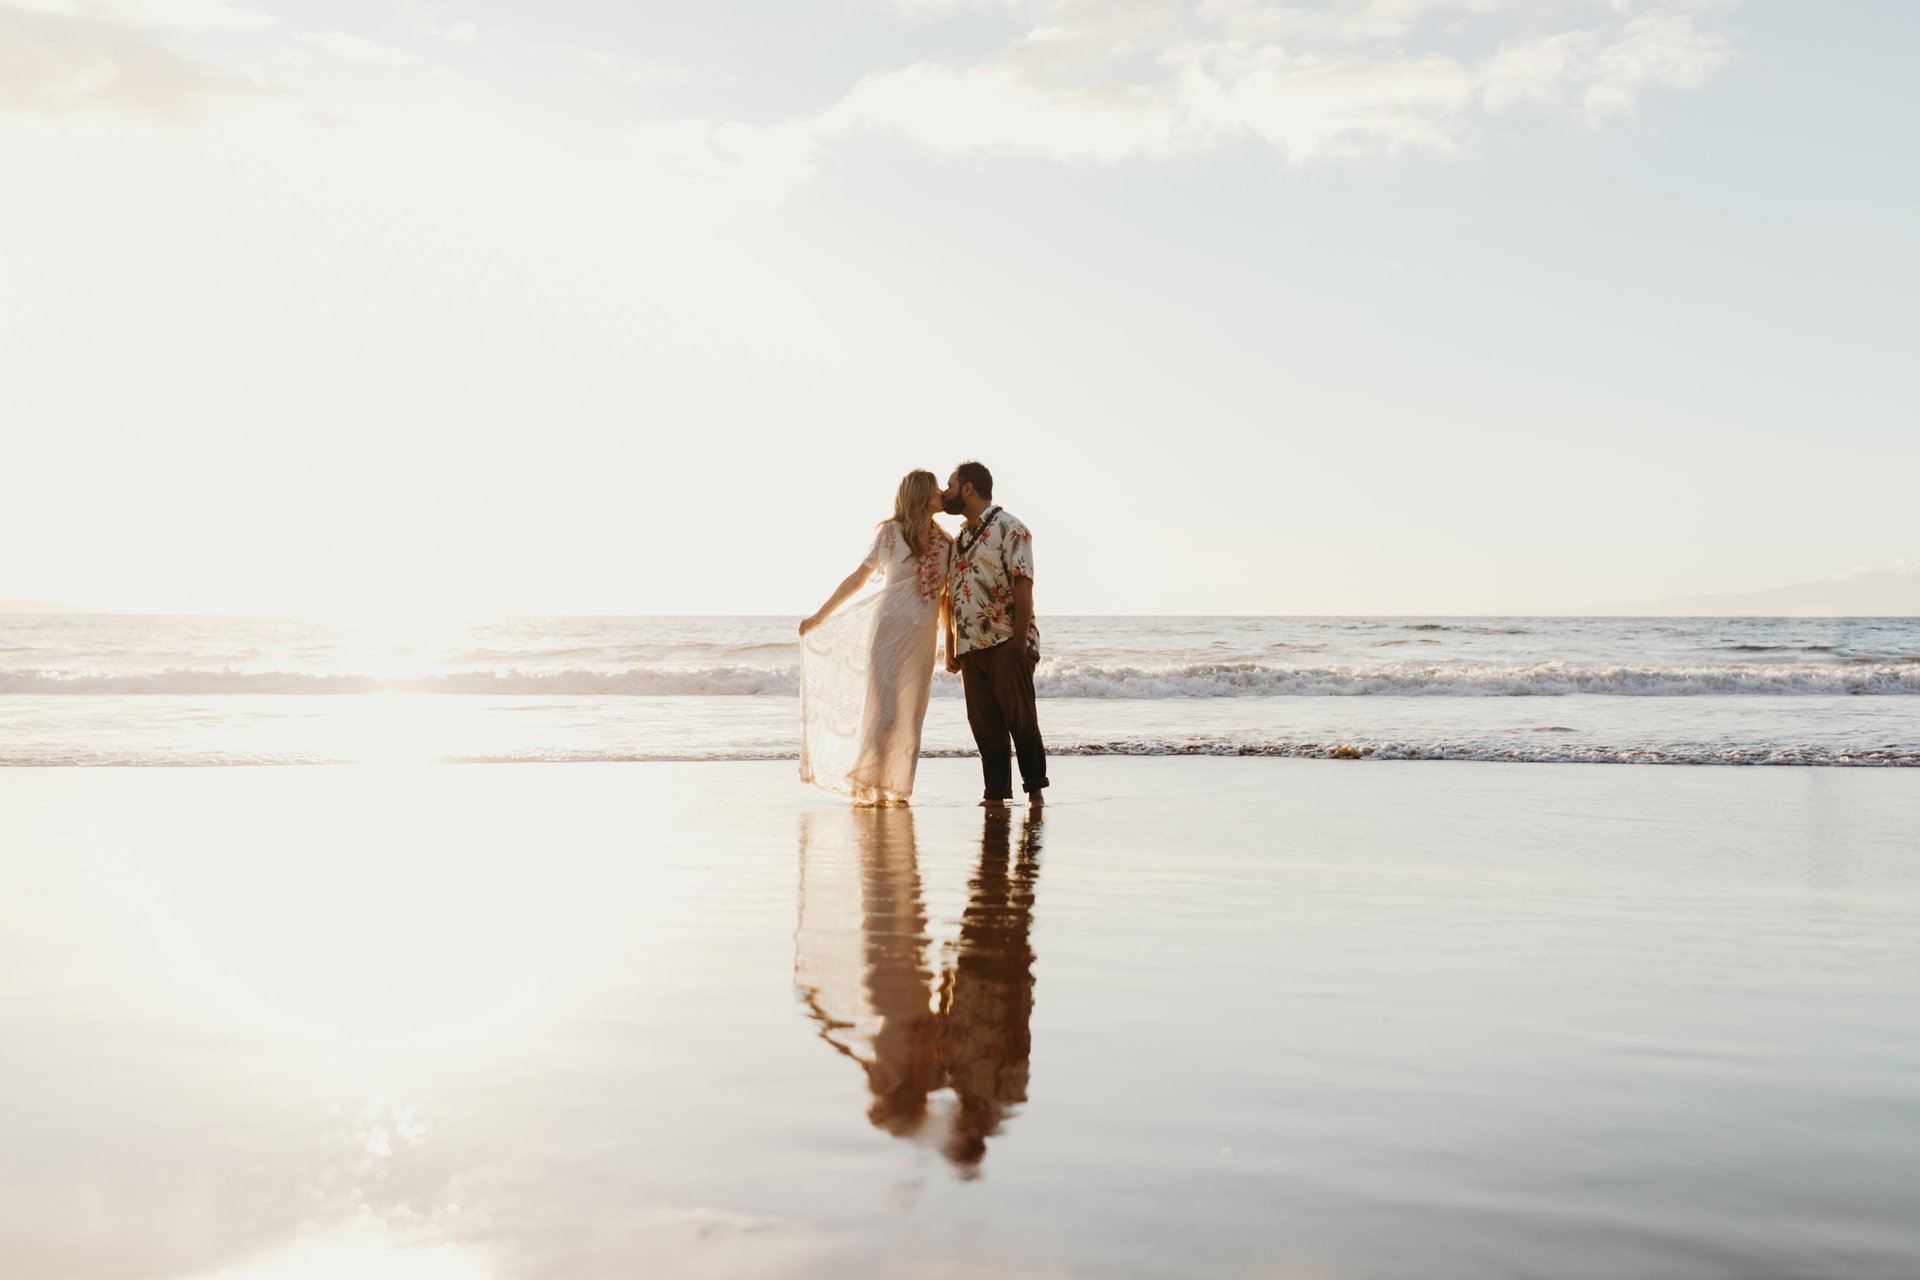 Flytographer Travel Story - Our Maui Babymoon